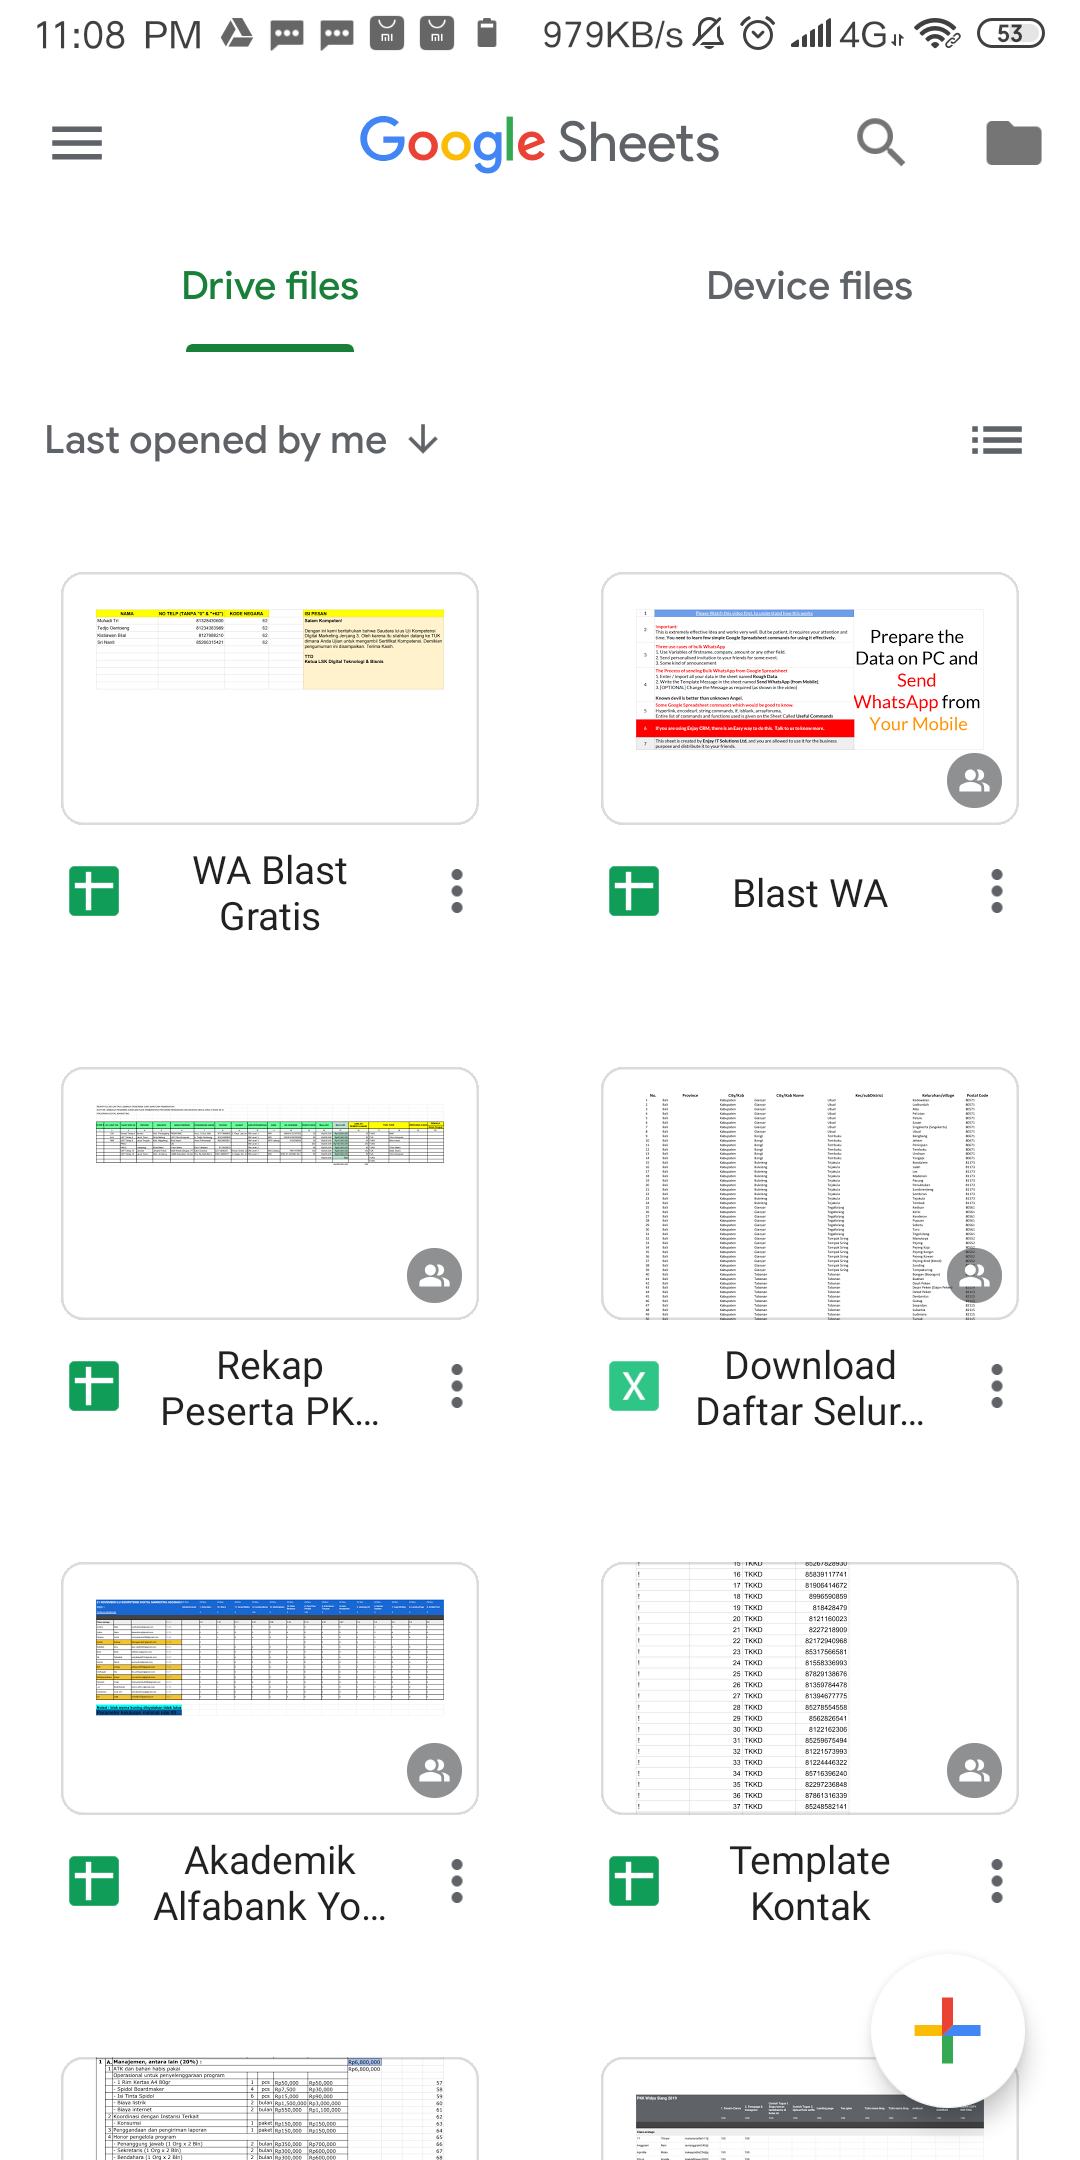 Tampilan Google Sheet di HP